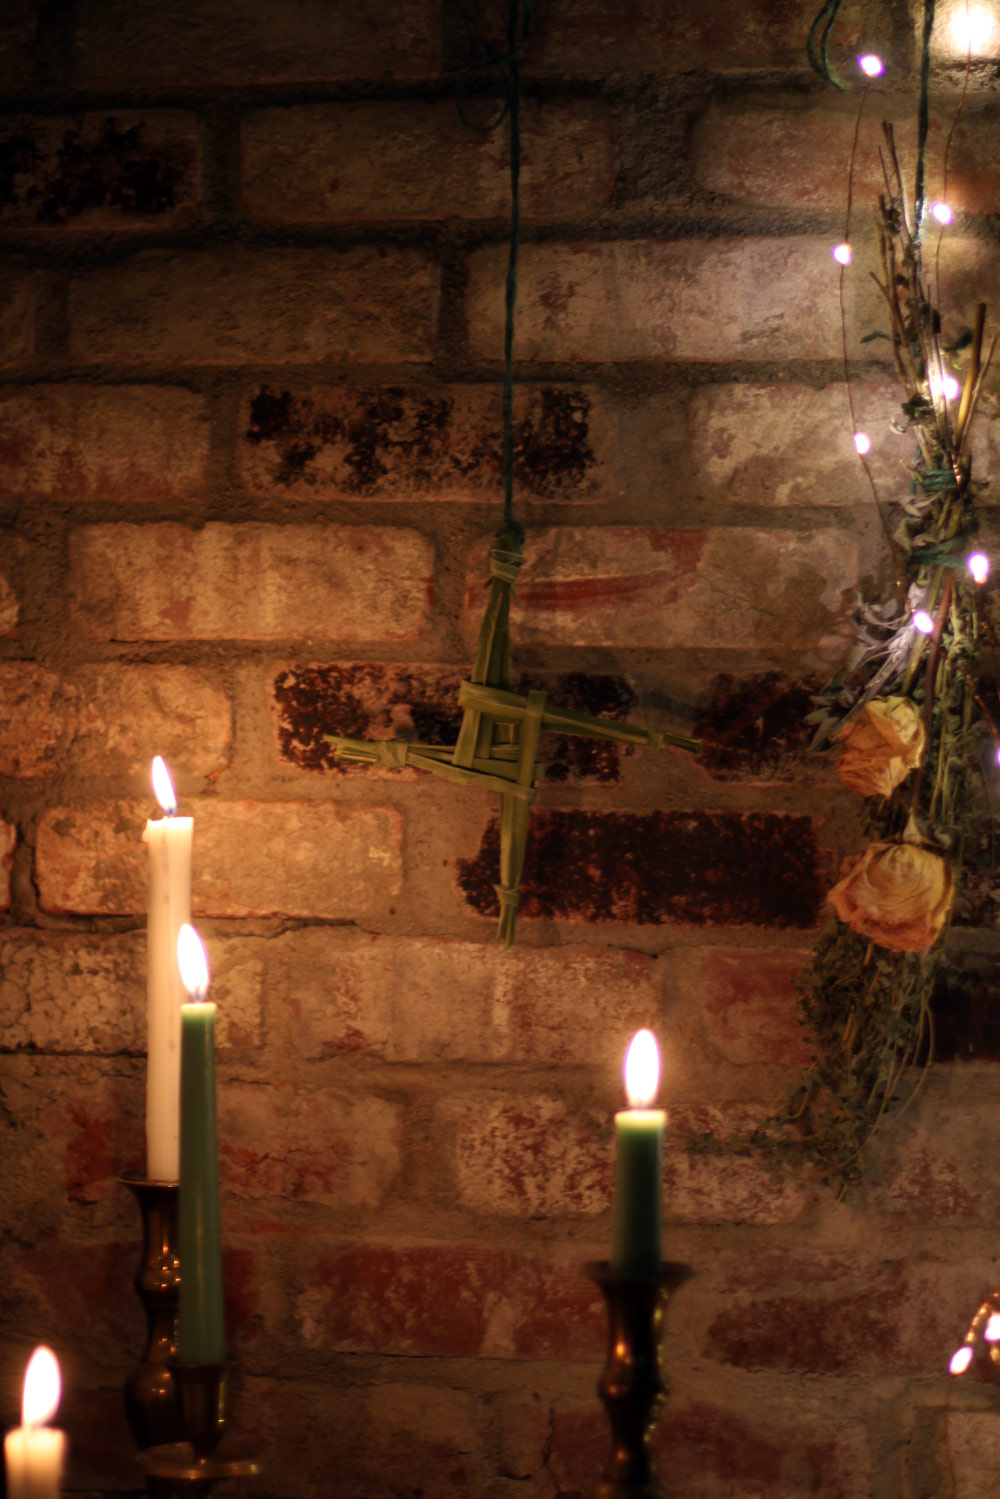 My Hearthside Imbolc Altar and